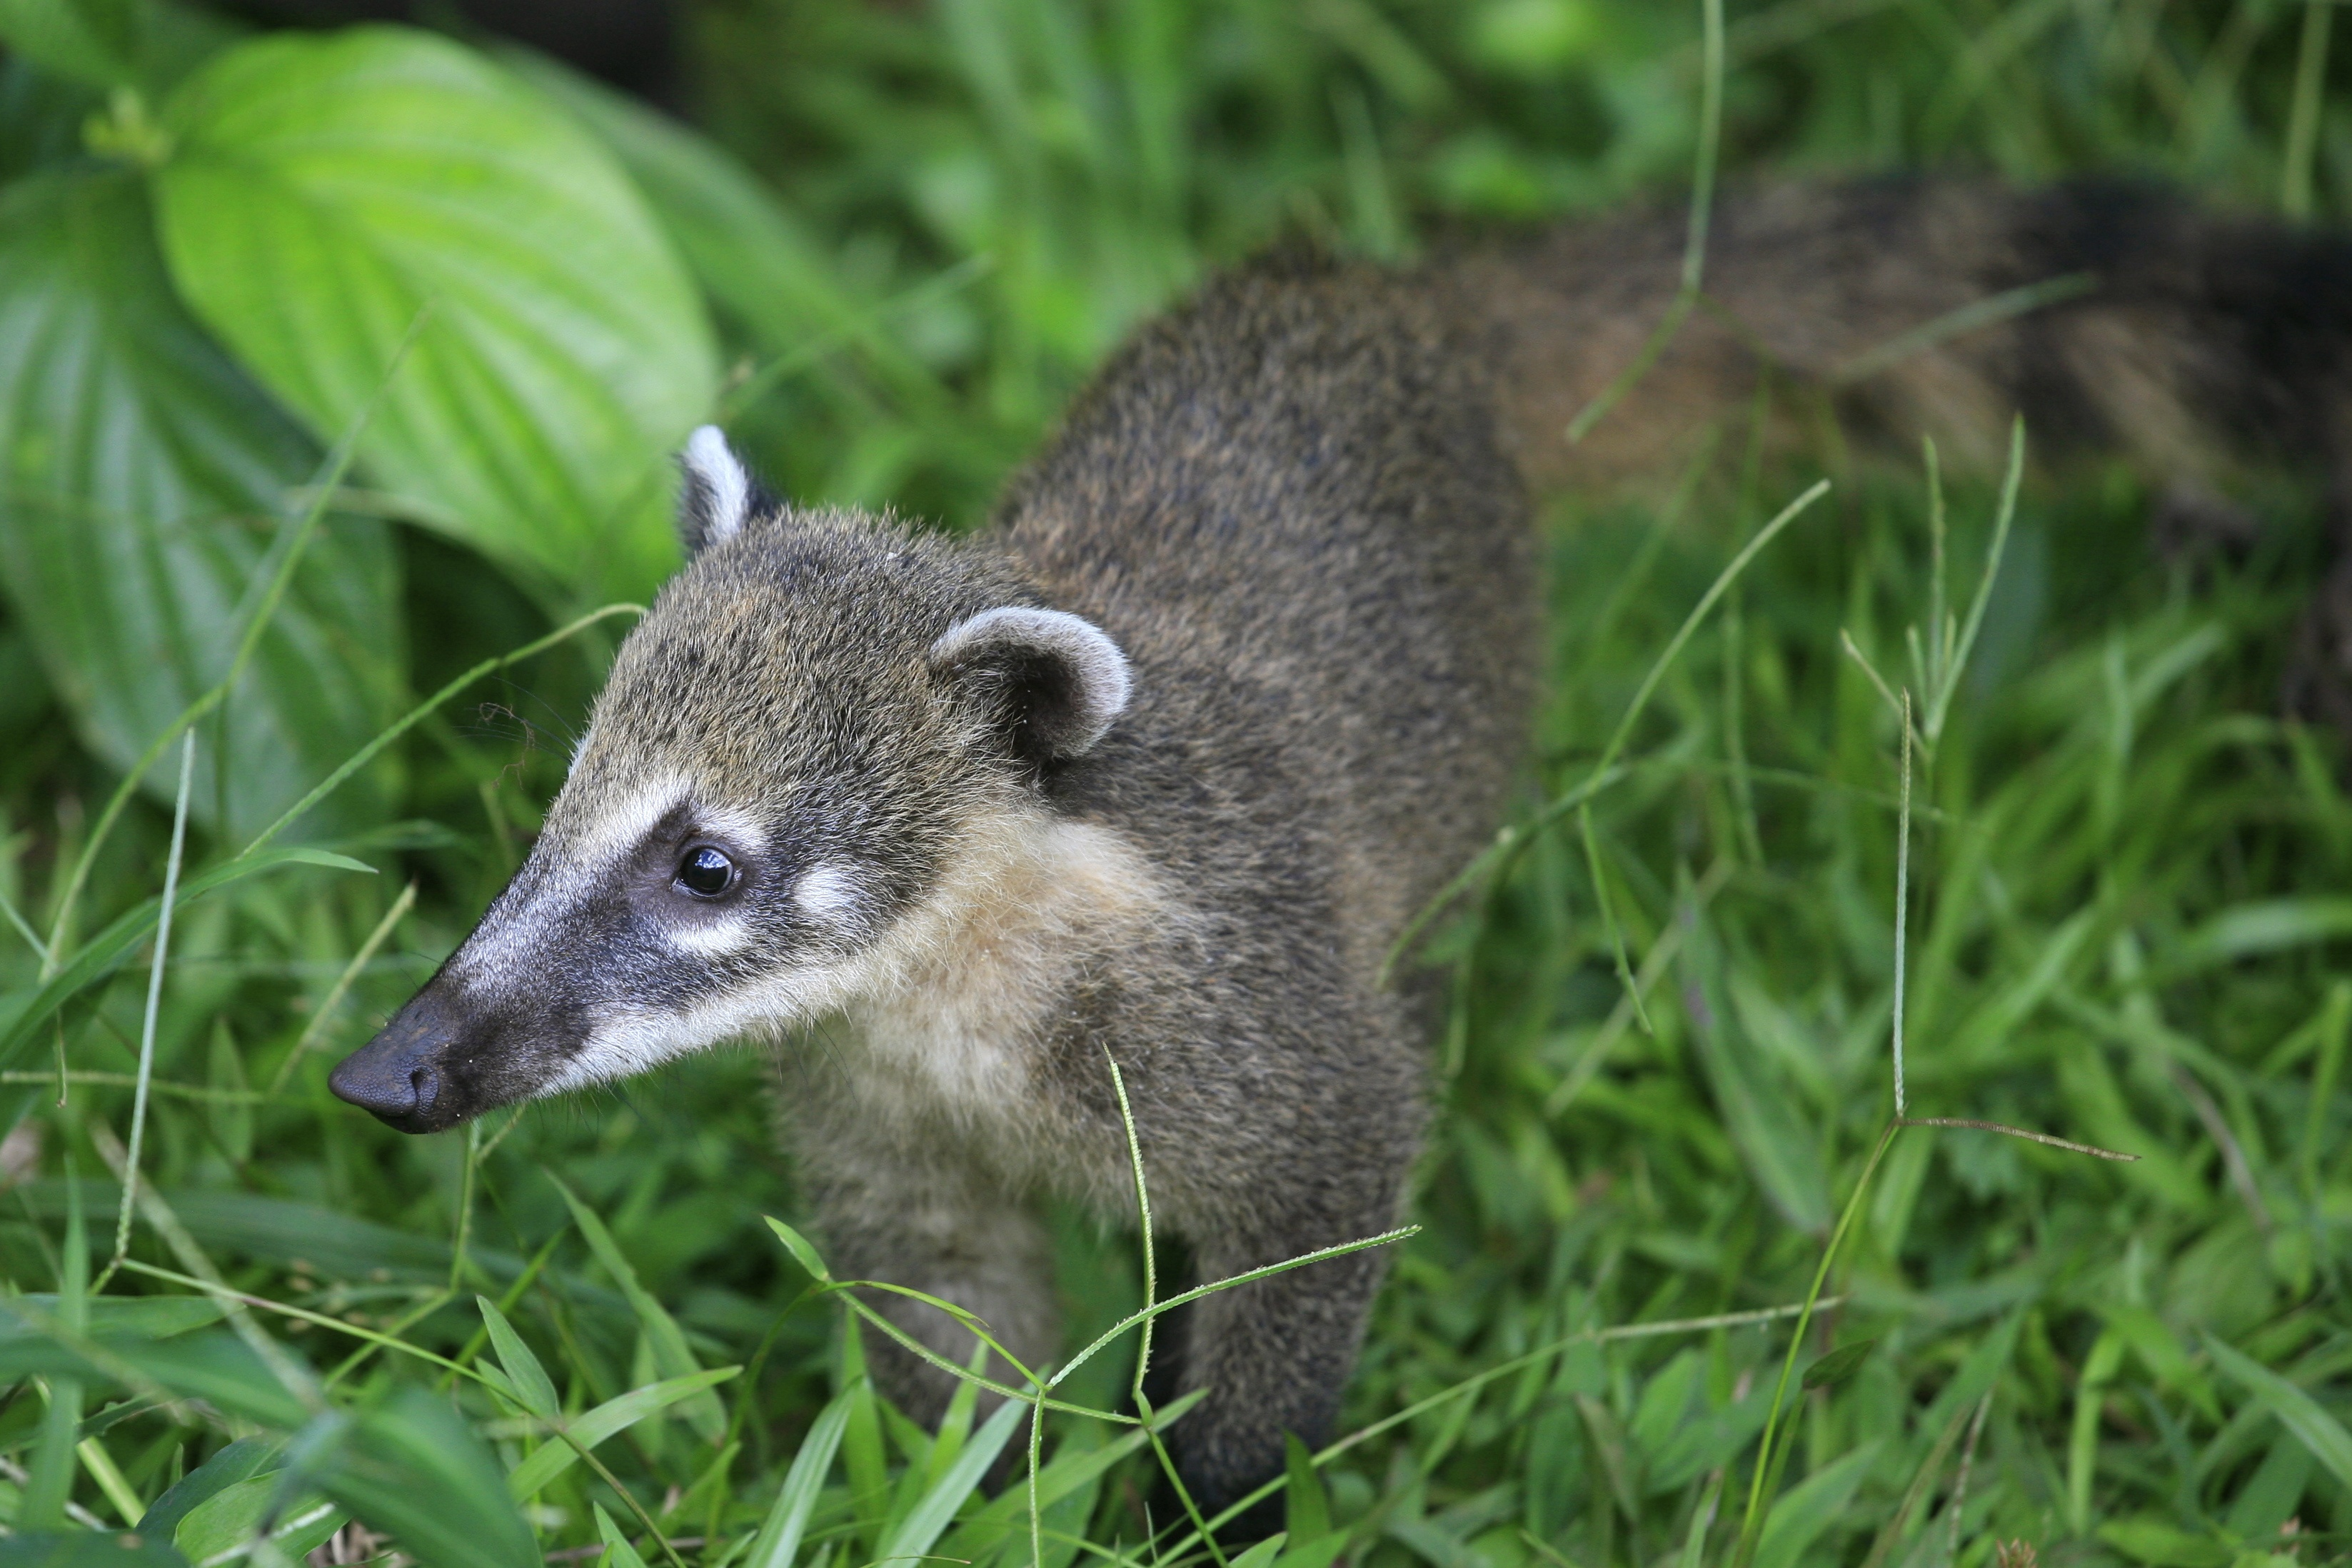 google maps location history with File Baby South American Coati  5465648302 on File Frida Nordstrand likewise File Baby South American Coati  5465648302 likewise File Marseille H C3 B4tel de ville further File Can Feixes  Cabrera d'Anoia    1 additionally File N415MC Emirates SkyCargo  Atlas Air   4072611476.